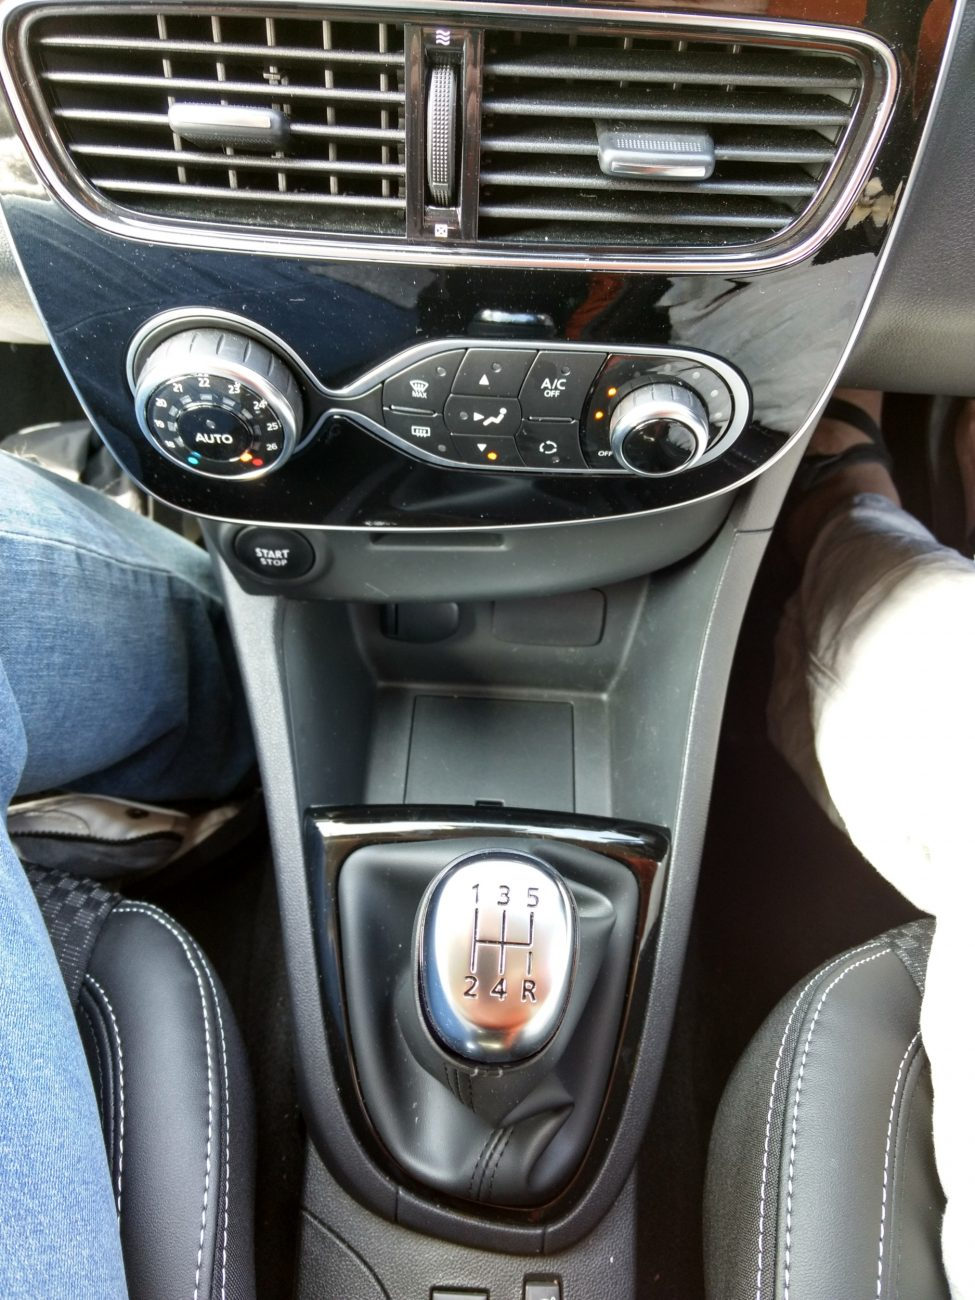 Gear shift lever on a manual transmission vehicle